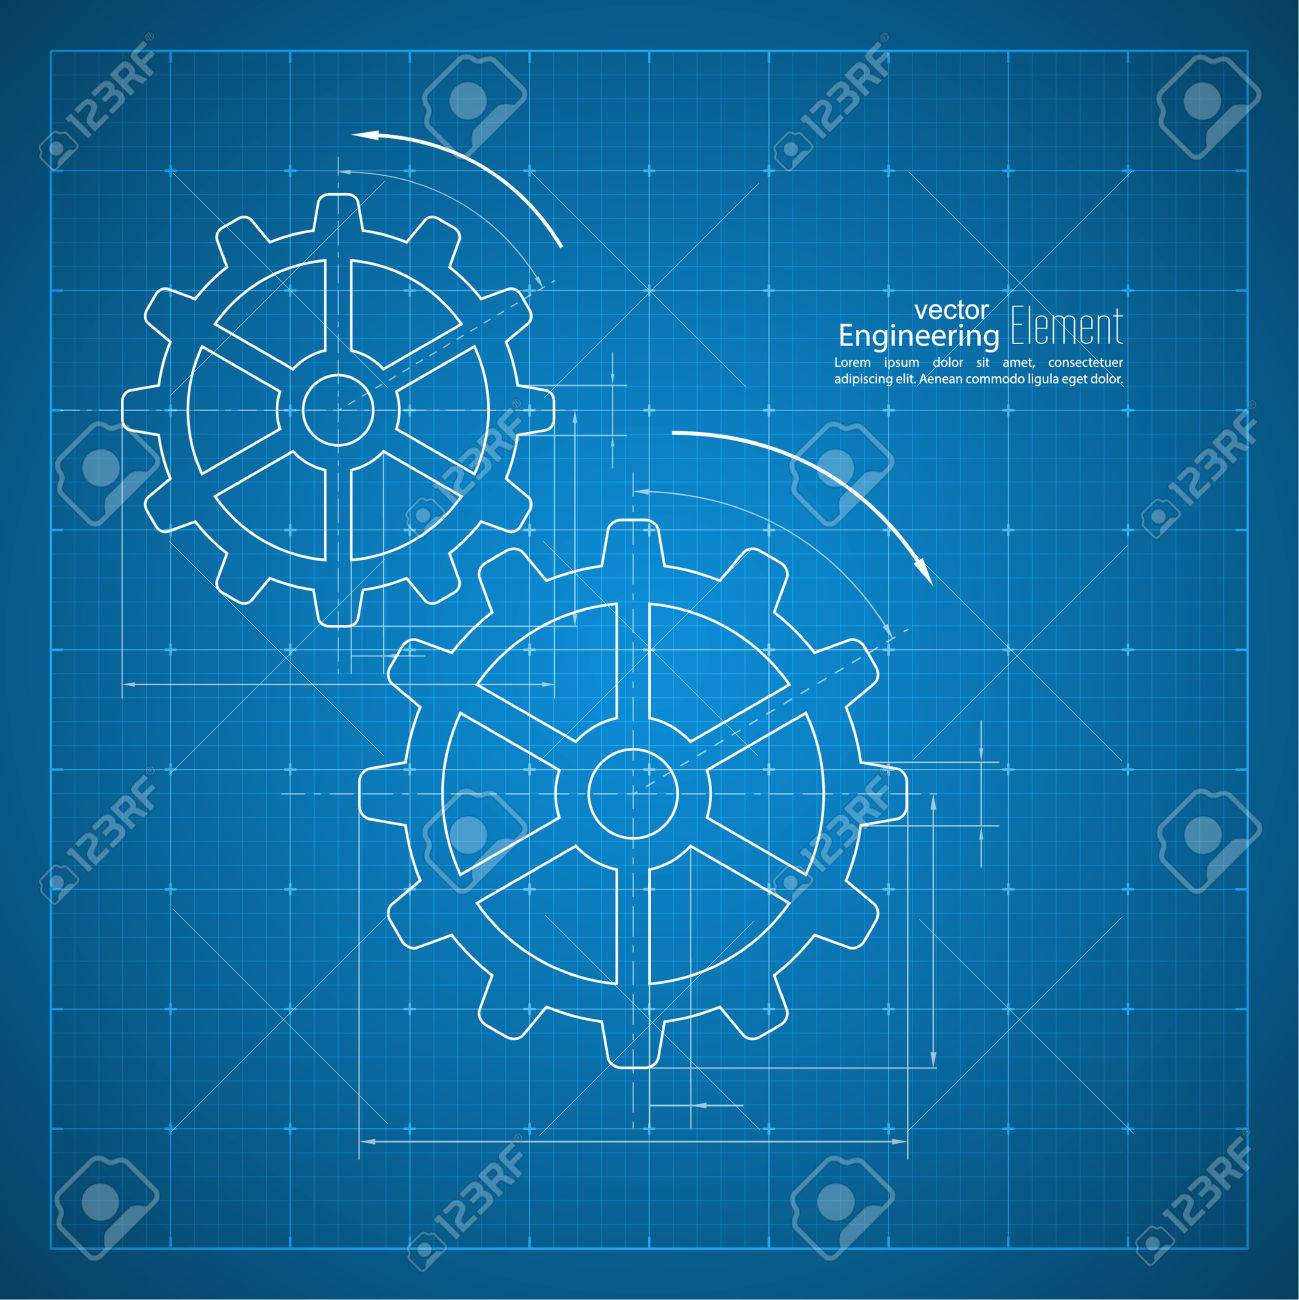 Paper blueprint background gears symbol on the drawing paper paper blueprint background gears symbol on the drawing paper concept of motion and mechanics malvernweather Gallery